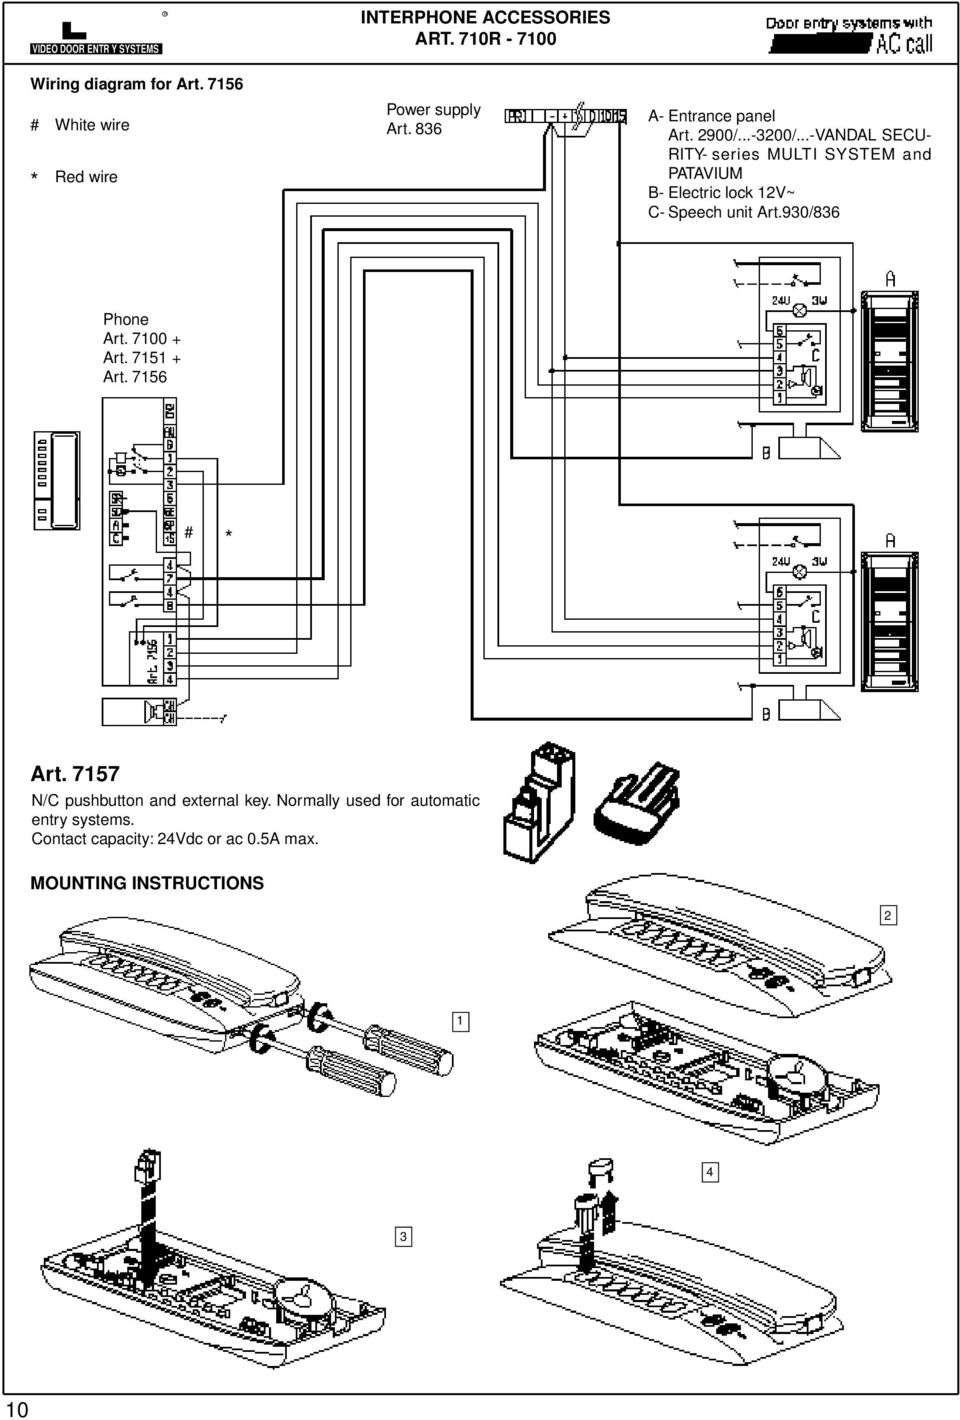 Schema Interphone Bpt Pdf